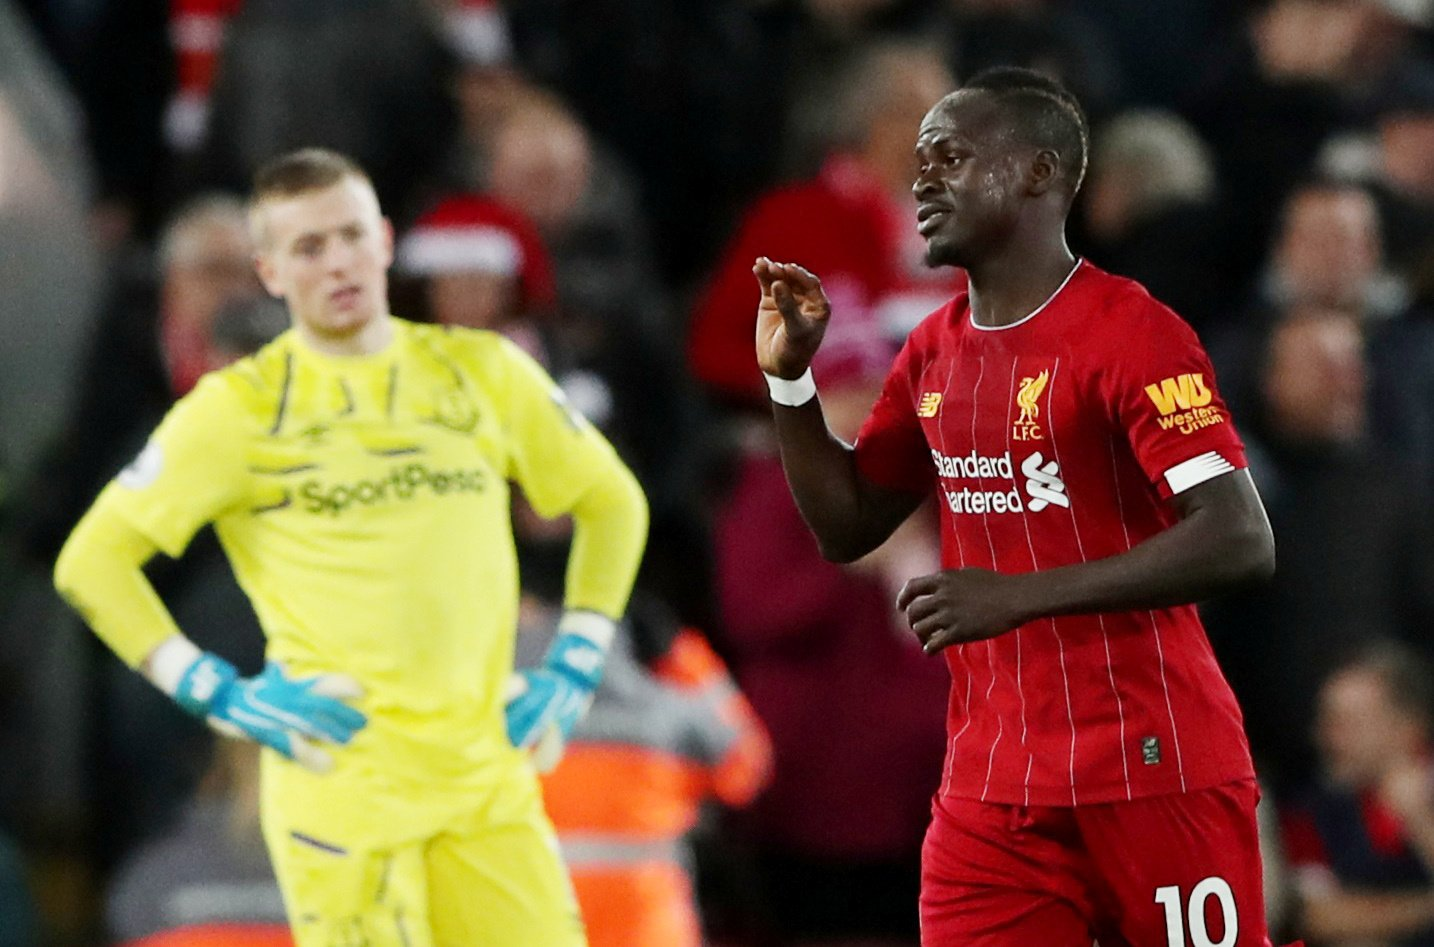 Liverpool: Fans laud Sadio Mane after his performance against Everton